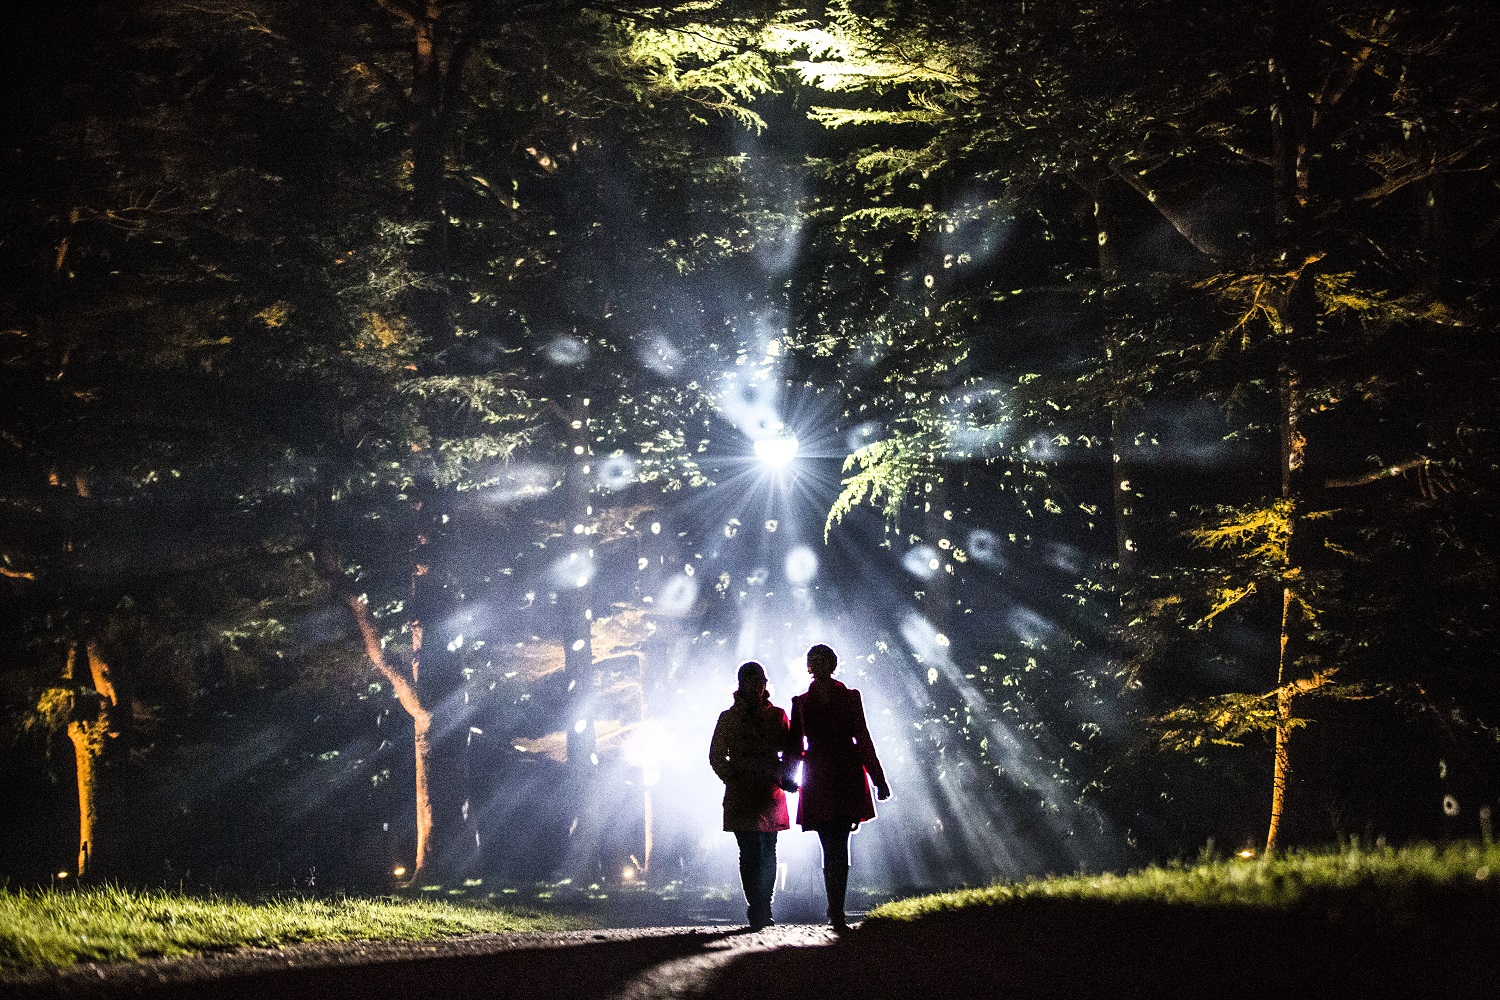 Dazzling light display illuminates Westonbirt's magical winter walk this Christmas